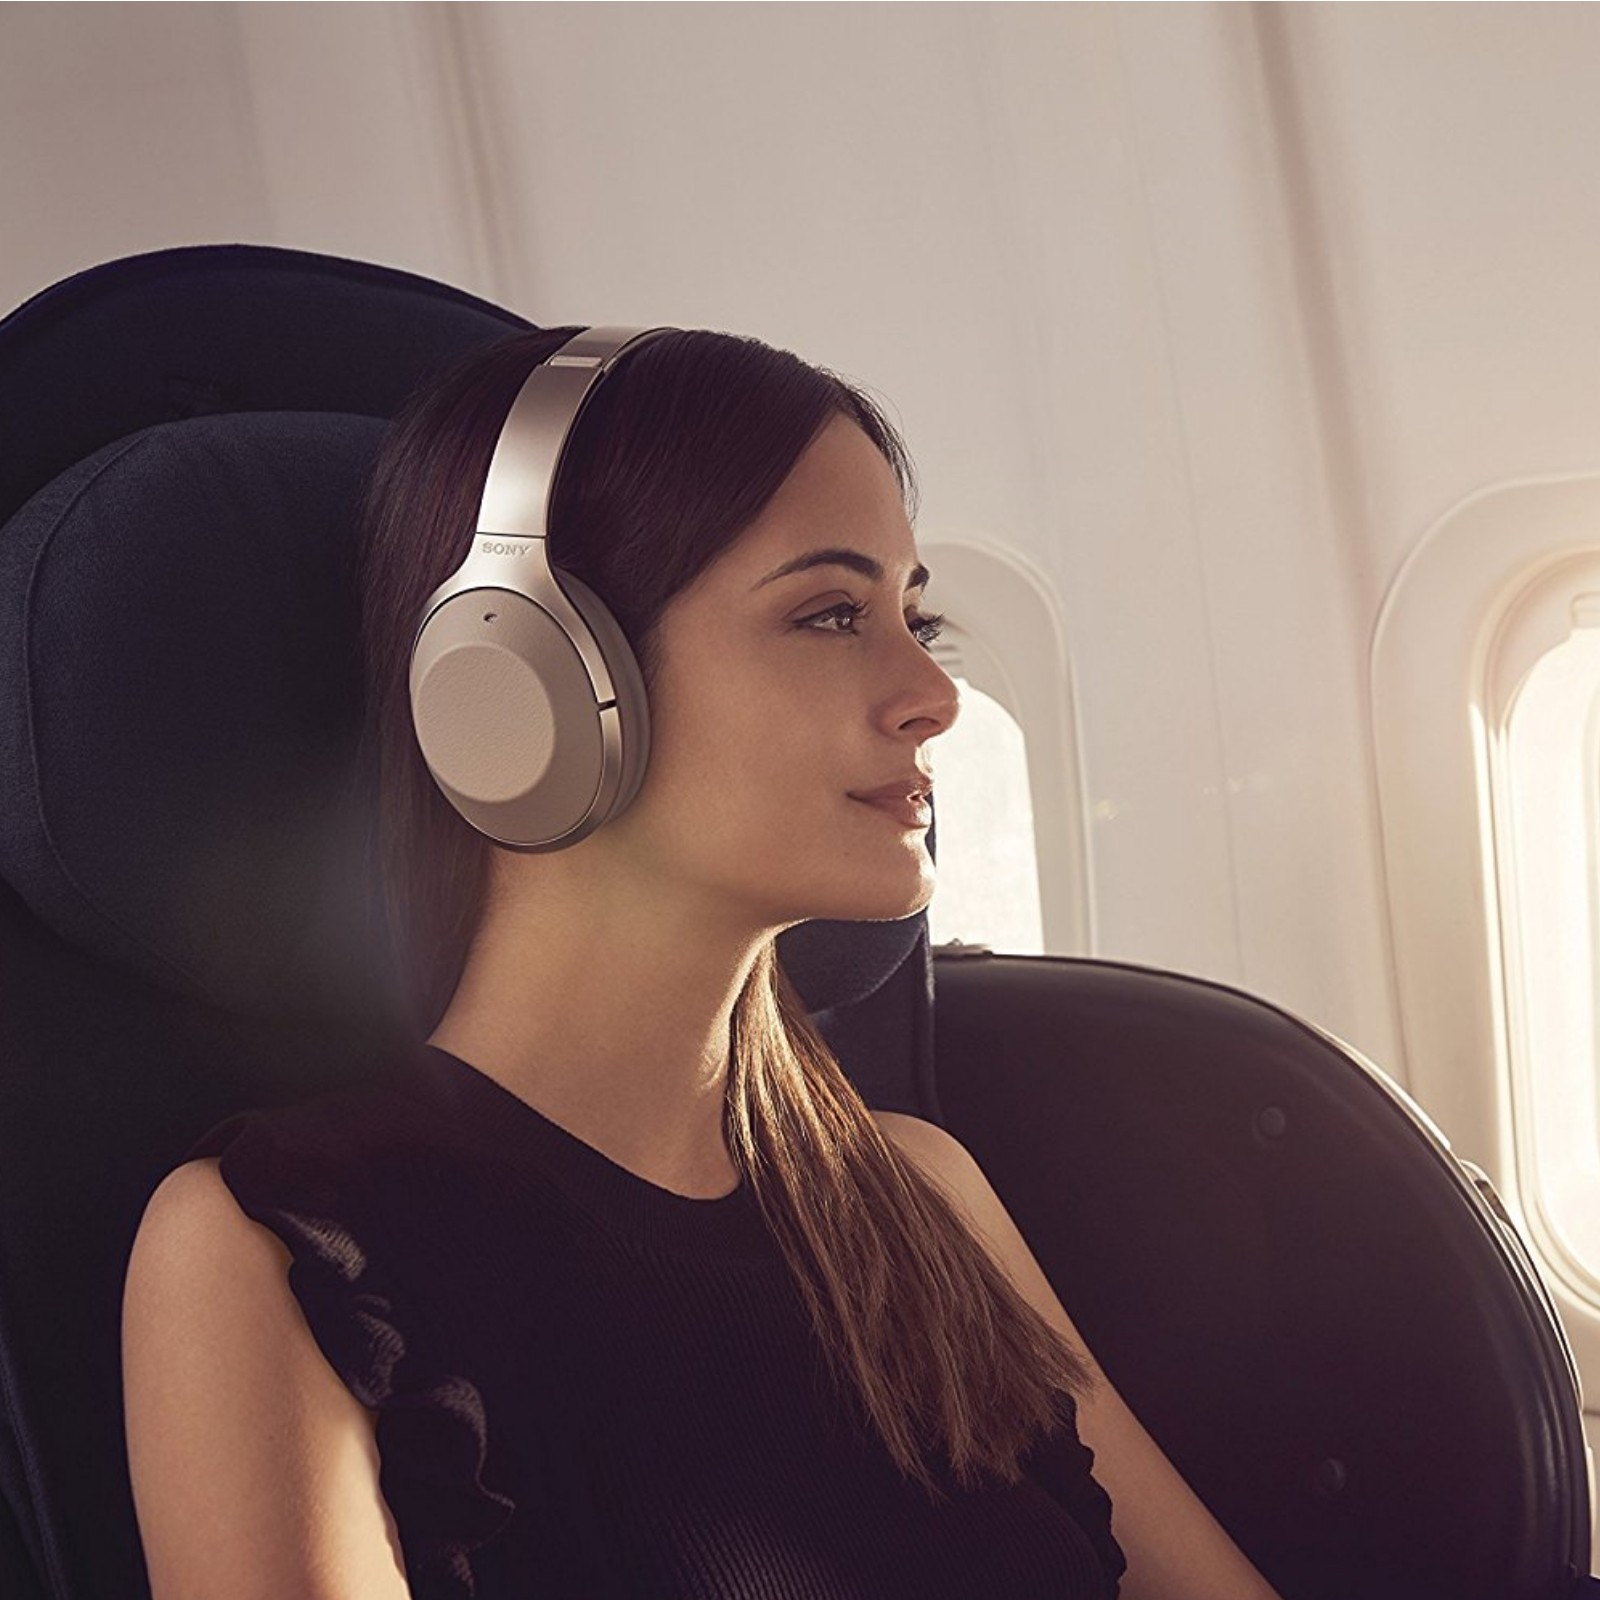 sony-wh-1000xm2-wh1000xm2-wireless-bluetooth-noise-canceling-headphones-gold